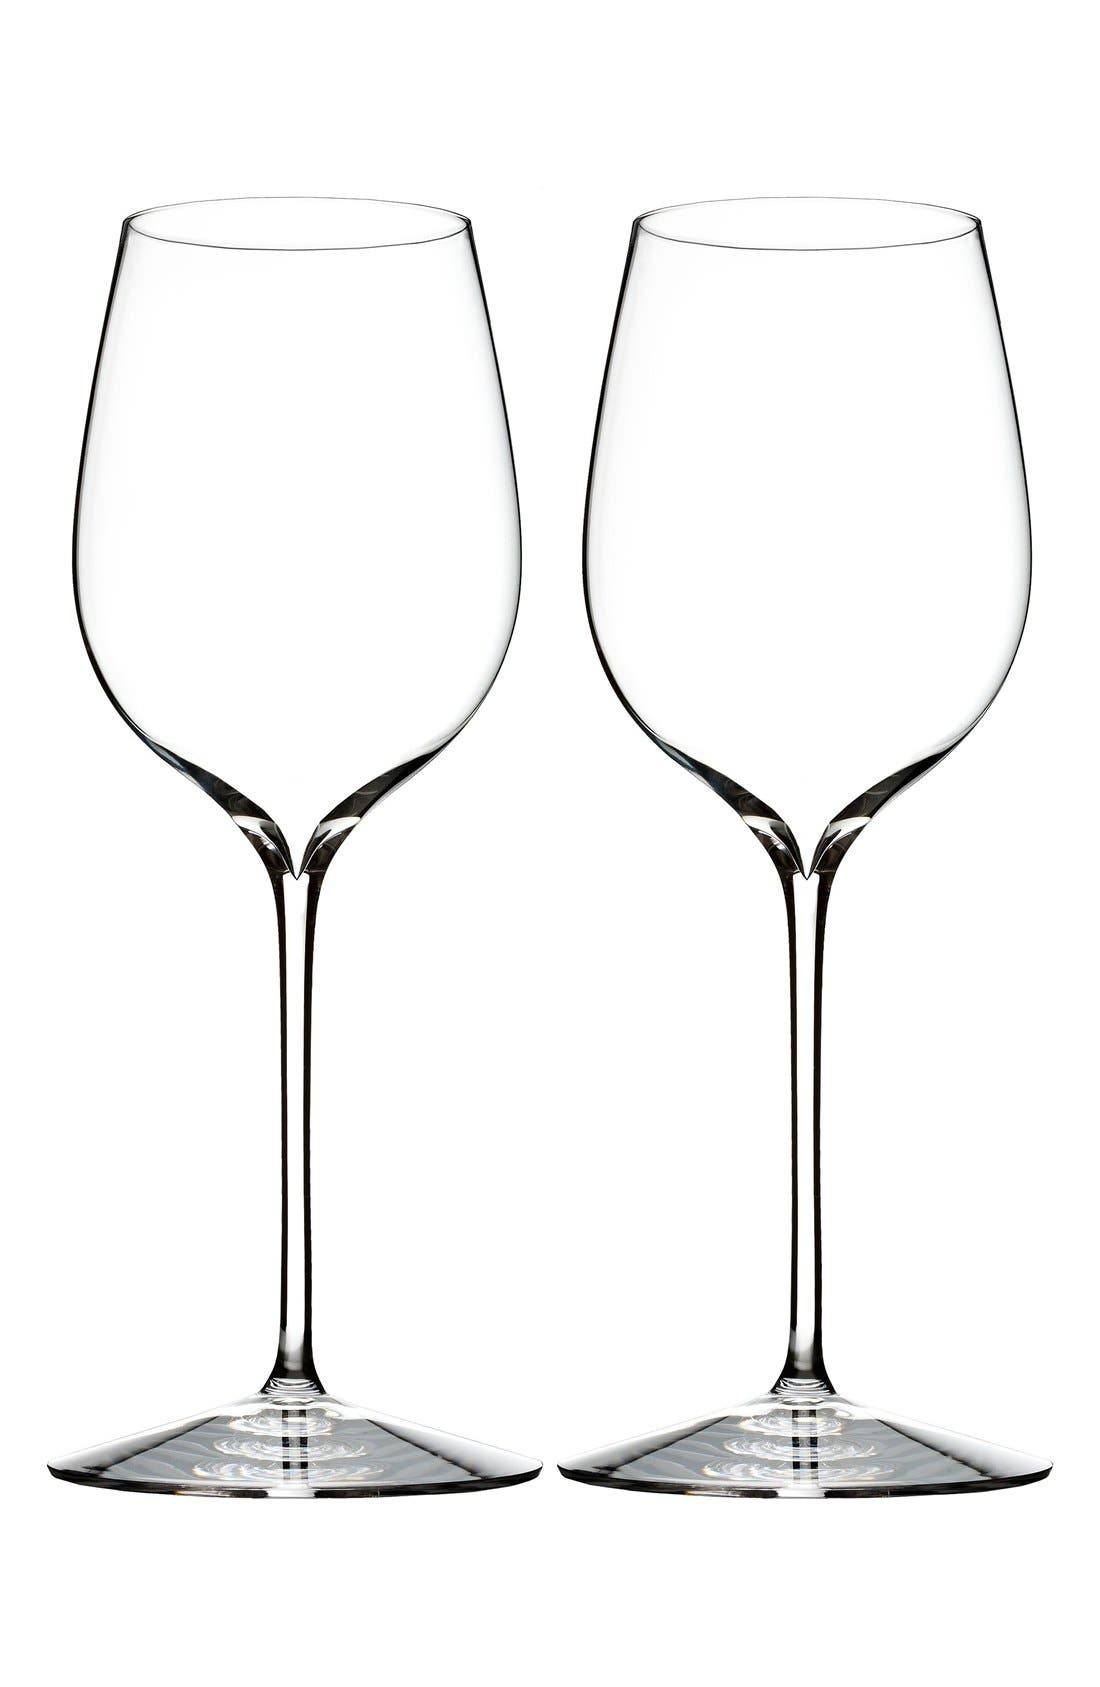 'Elegance' Fine Crystal Pinot Noir Glasses,                         Main,                         color, Clear